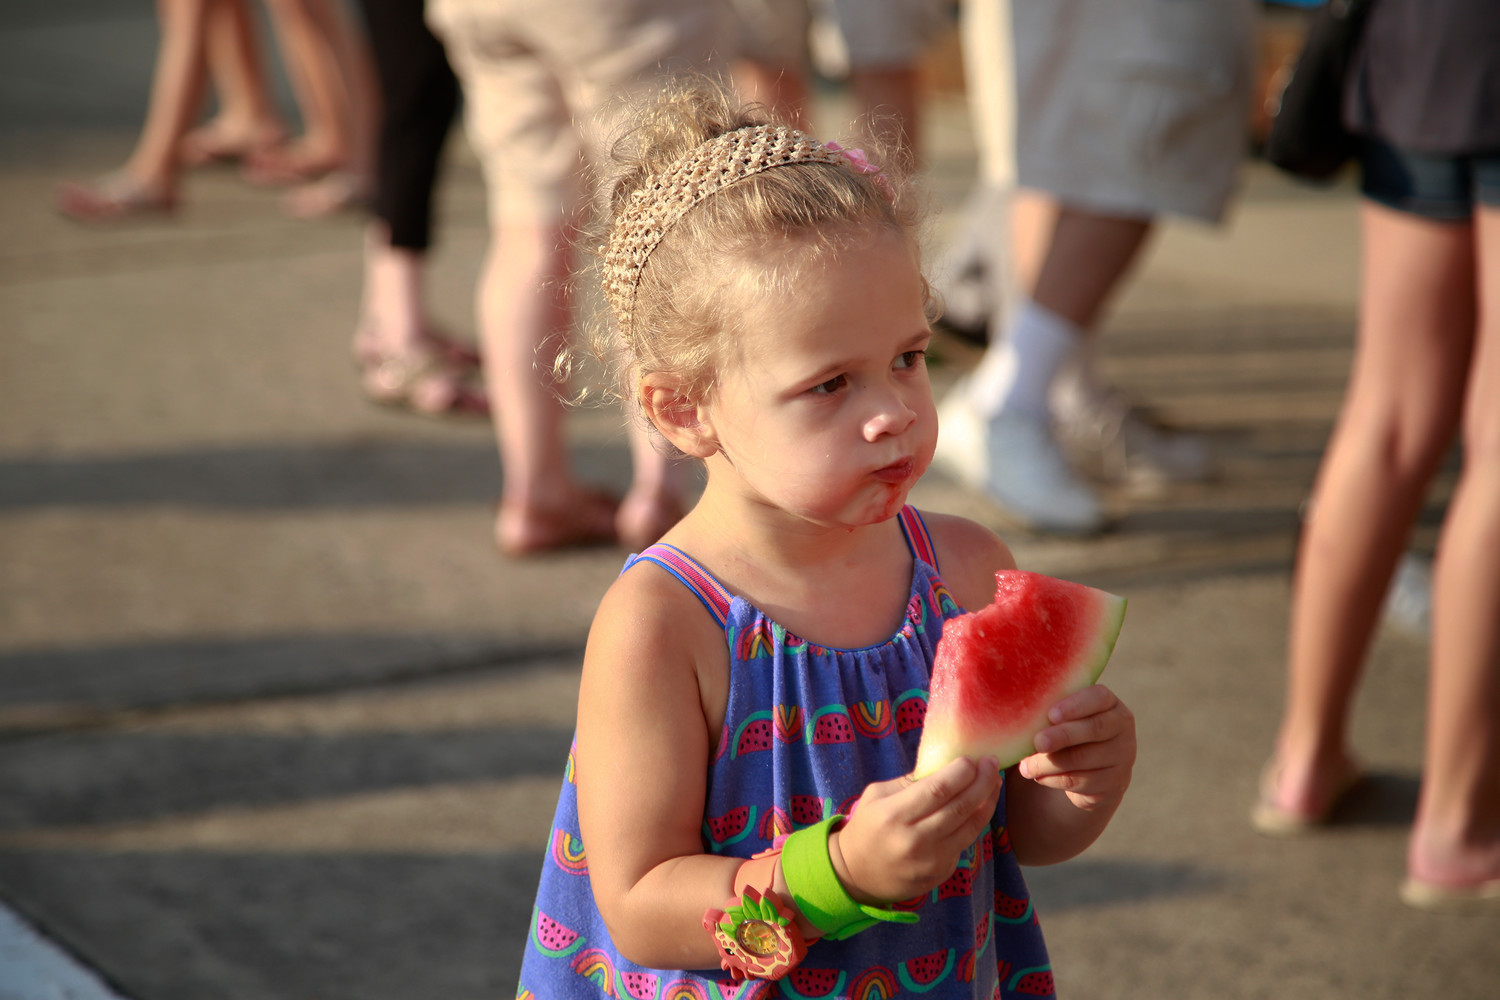 Alessandra Sartori, 2, enjoyed her watermelon.